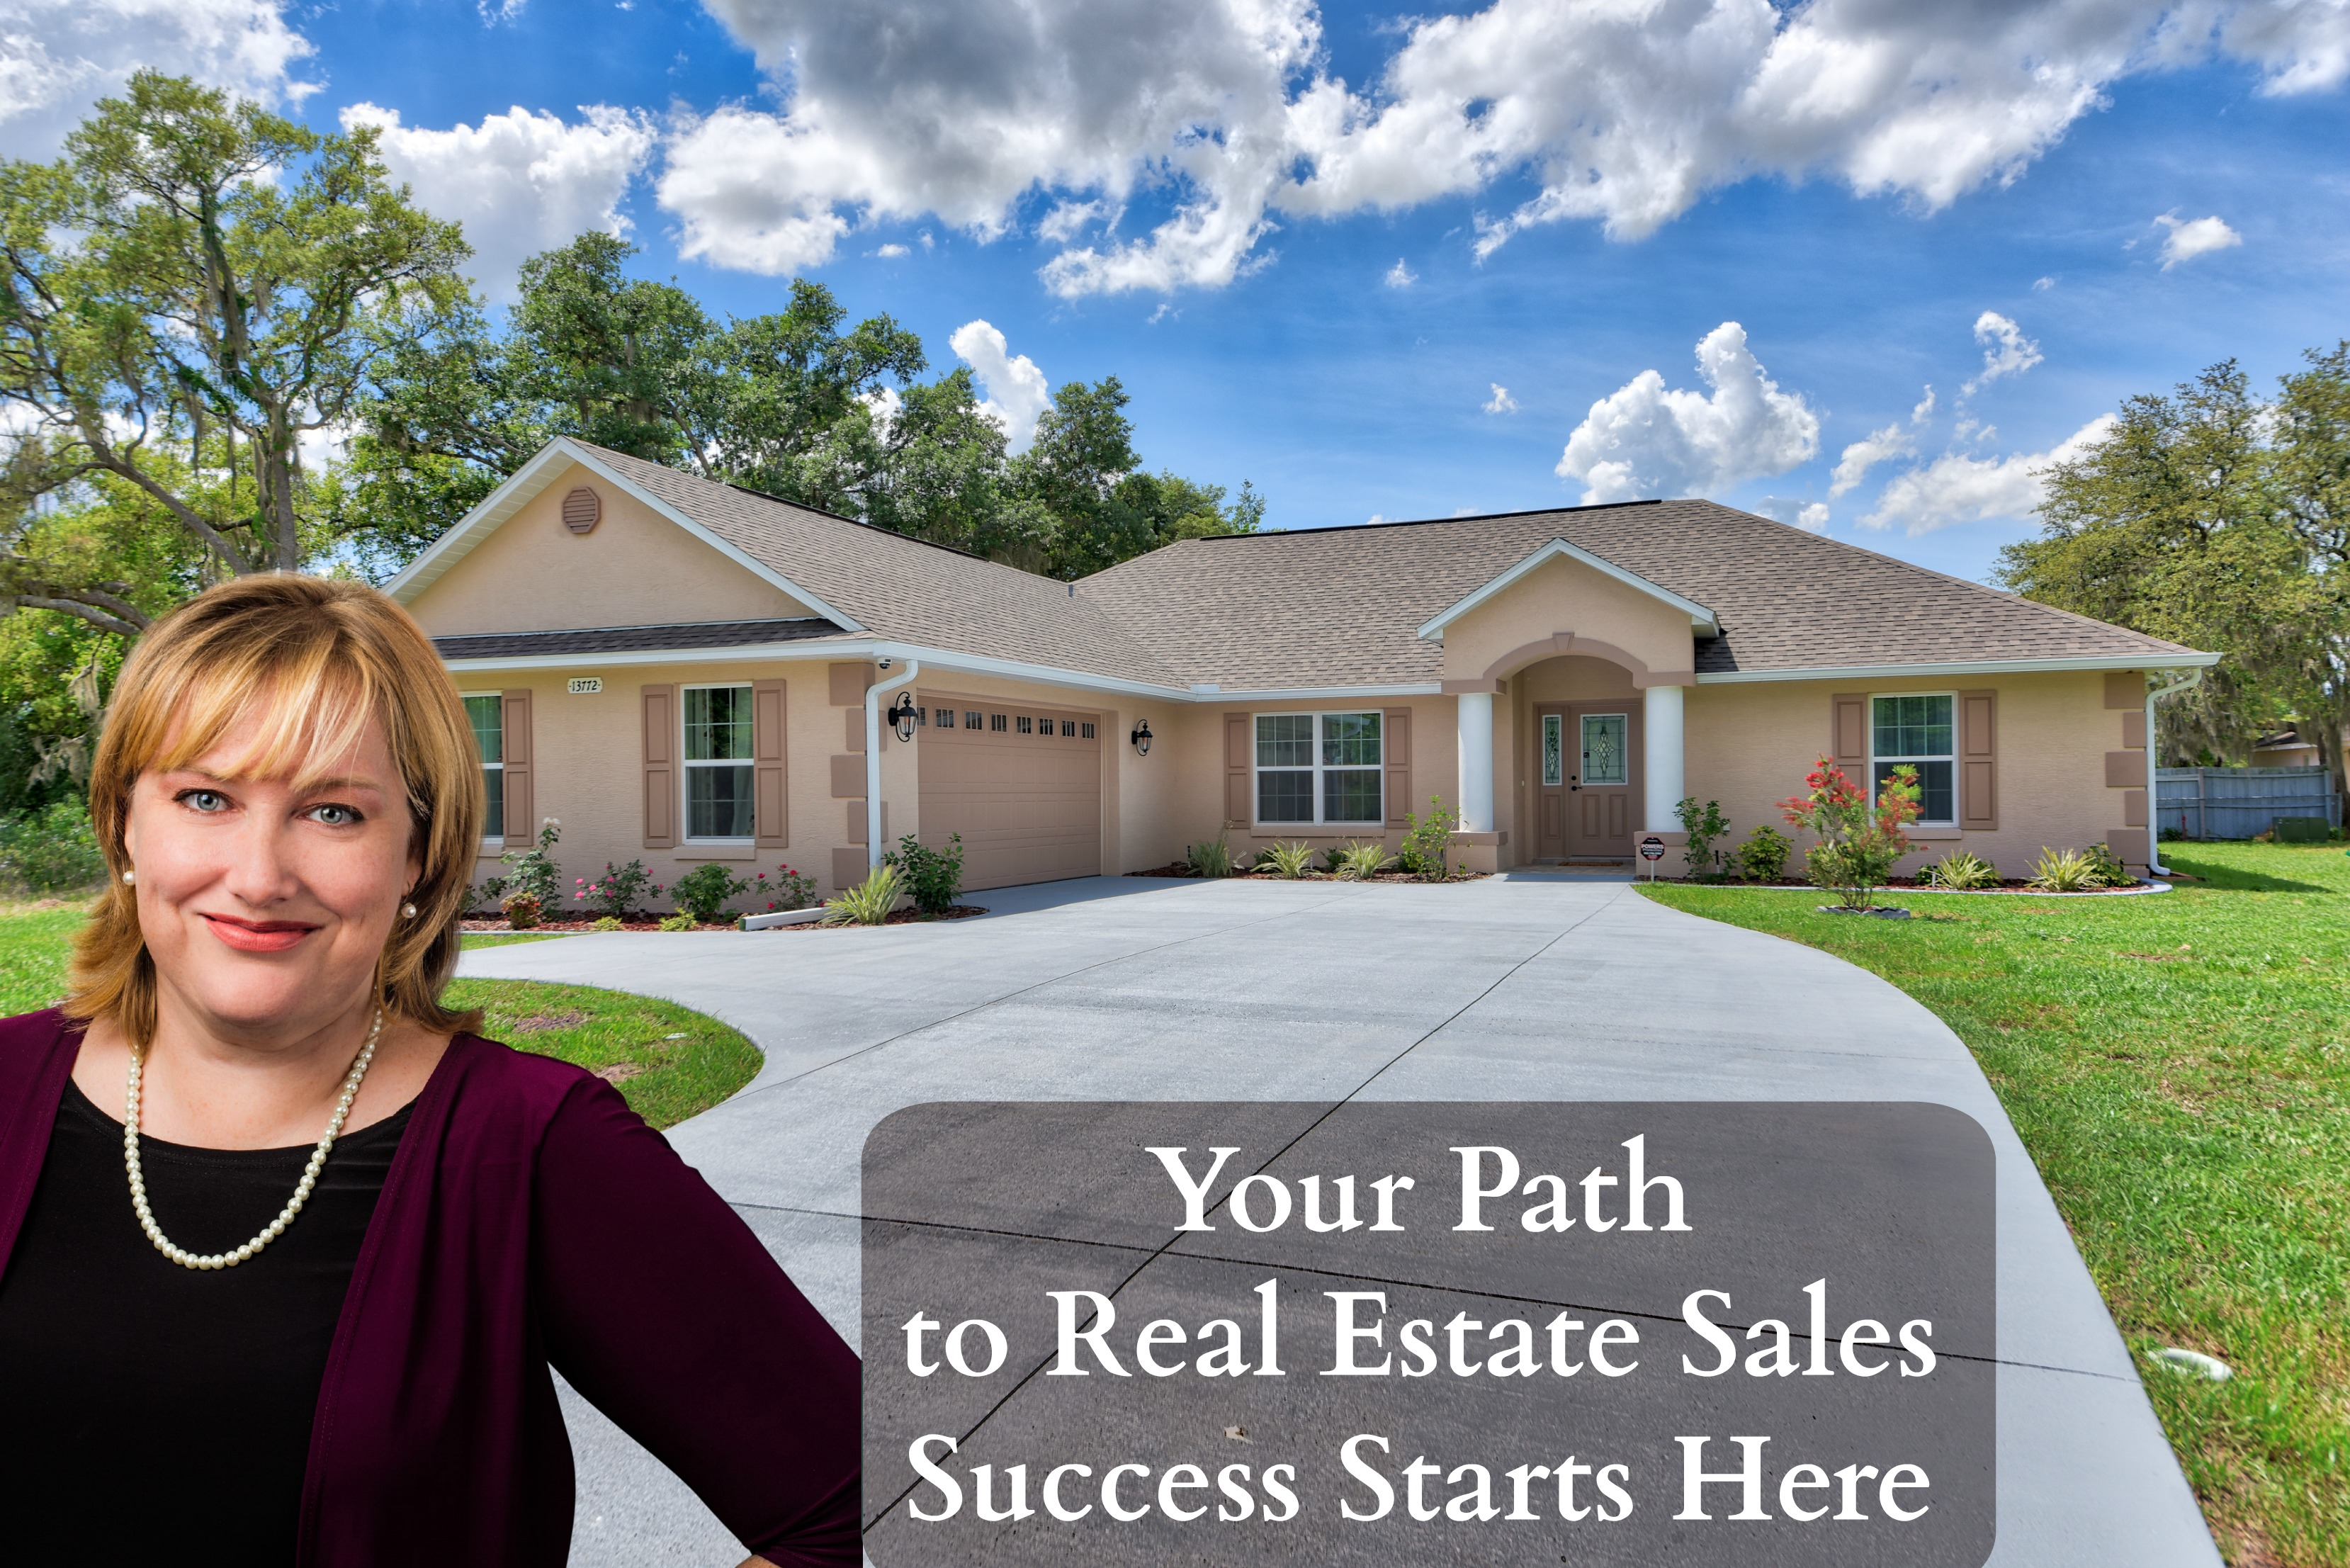 Interested in a Career in Real Estate Sales?